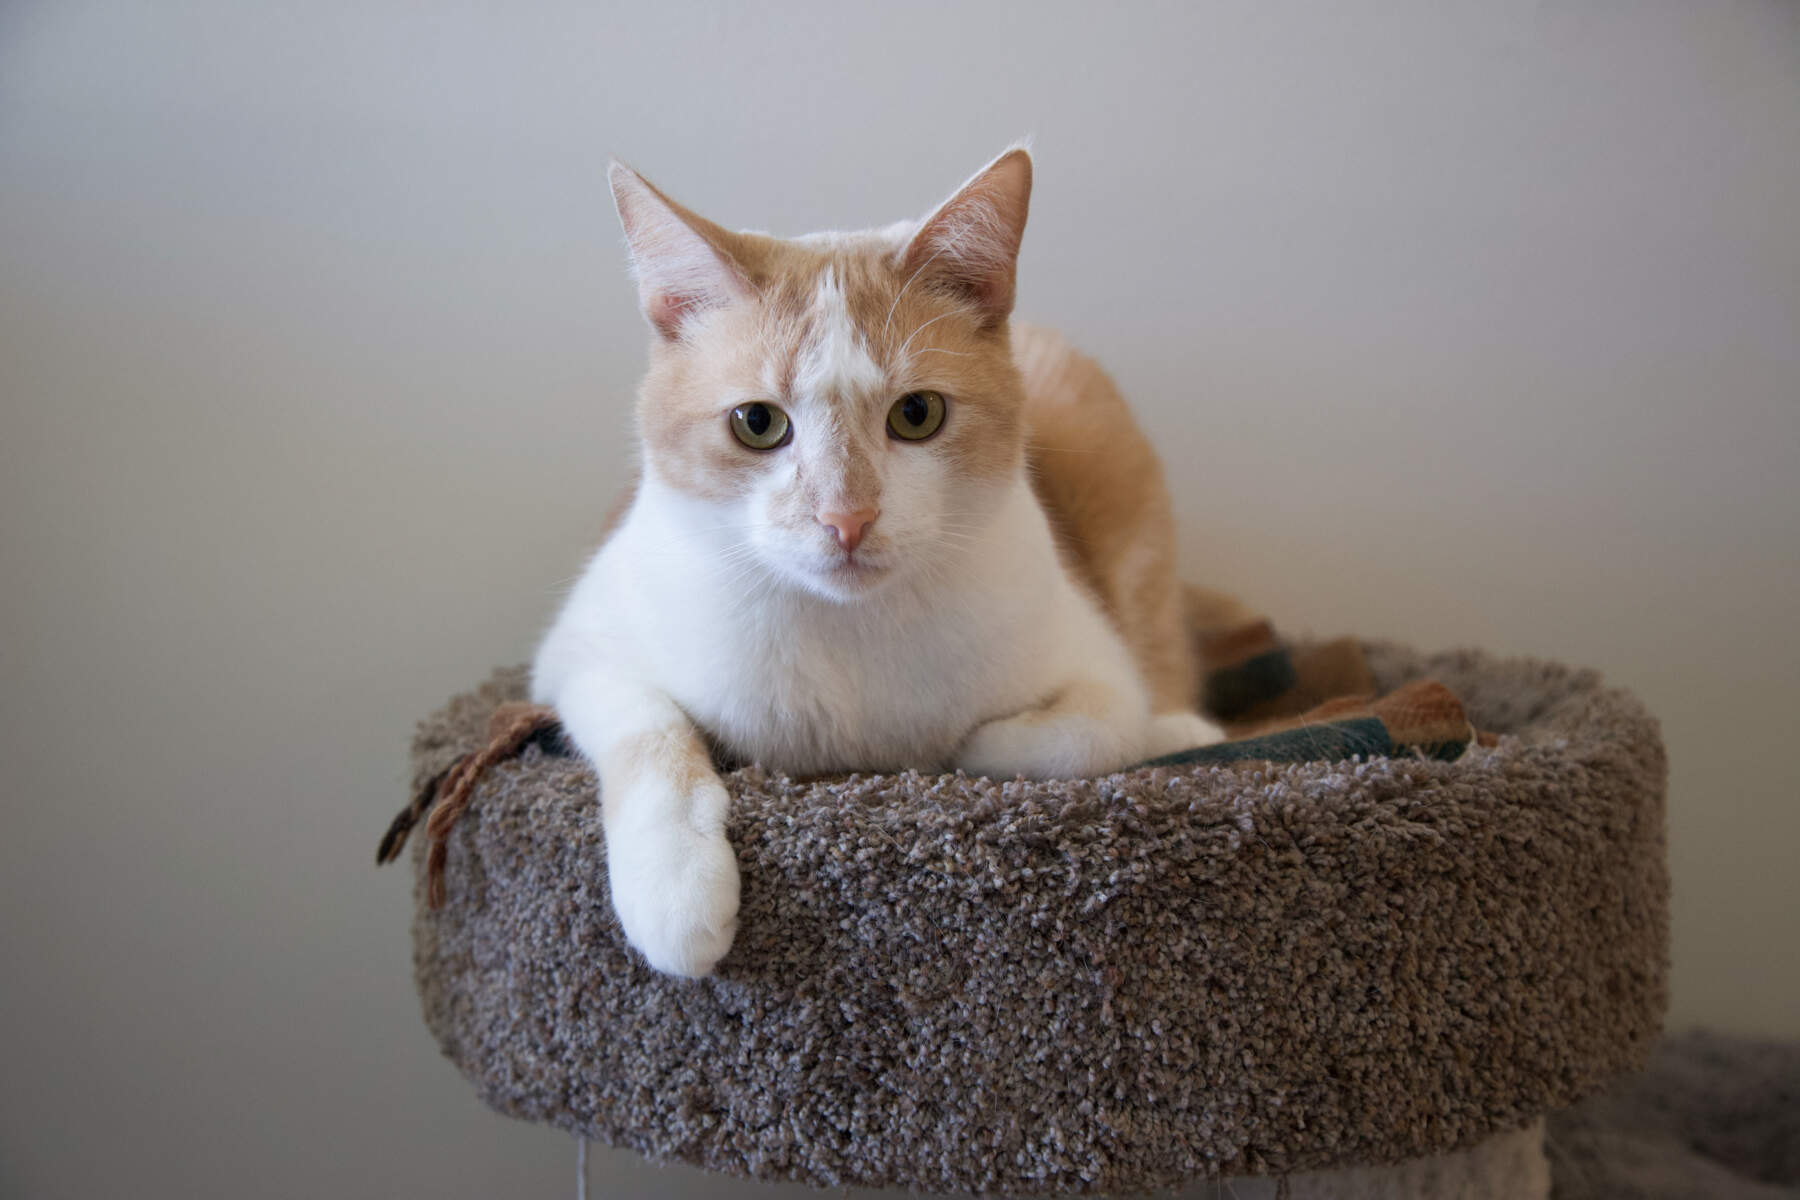 Max the cat relaxes on his cat tree.